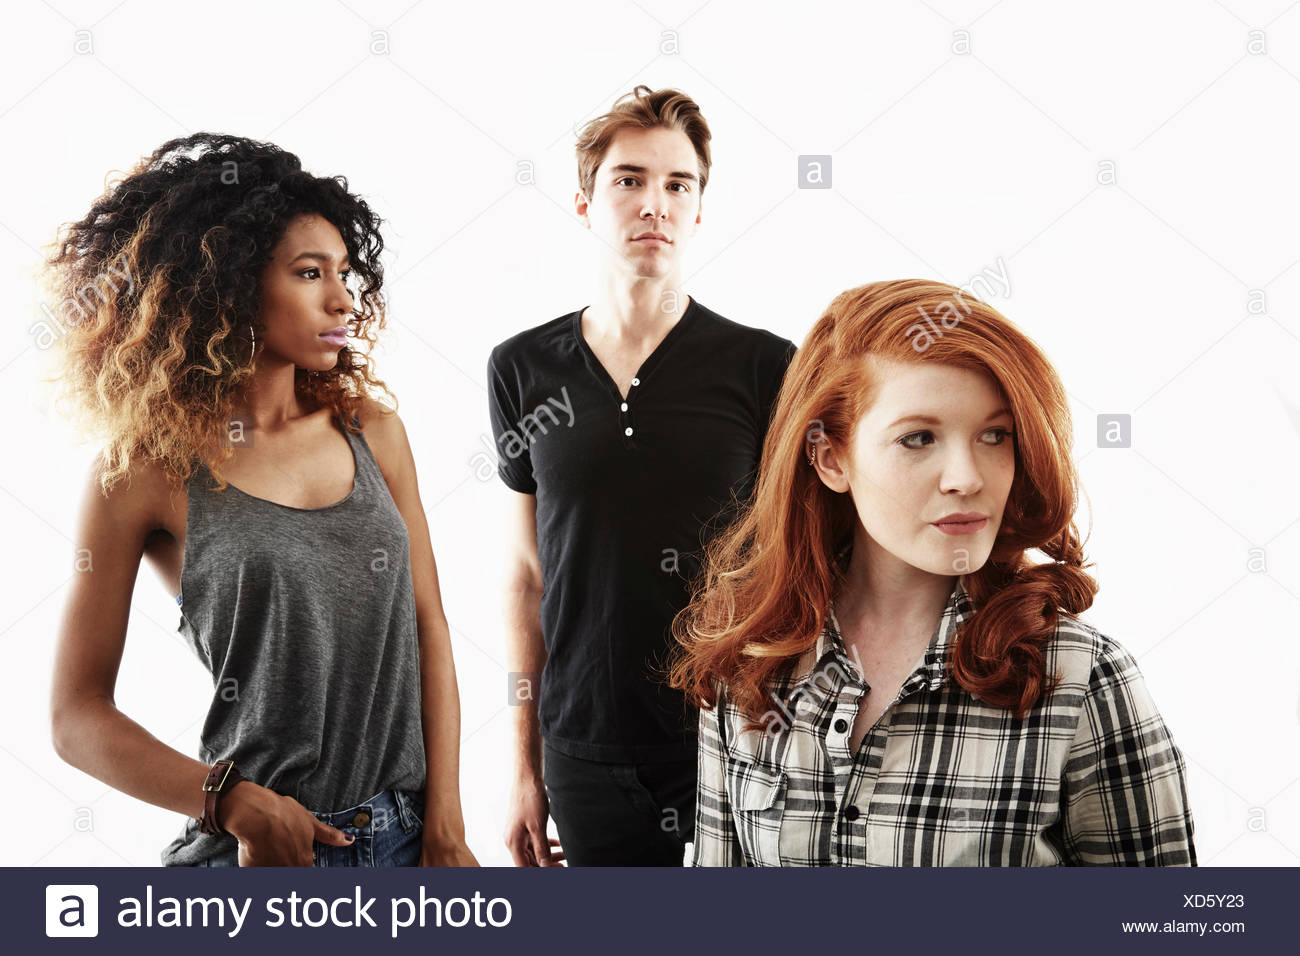 Studio portrait of two young adult women and one young adult man - Stock Image